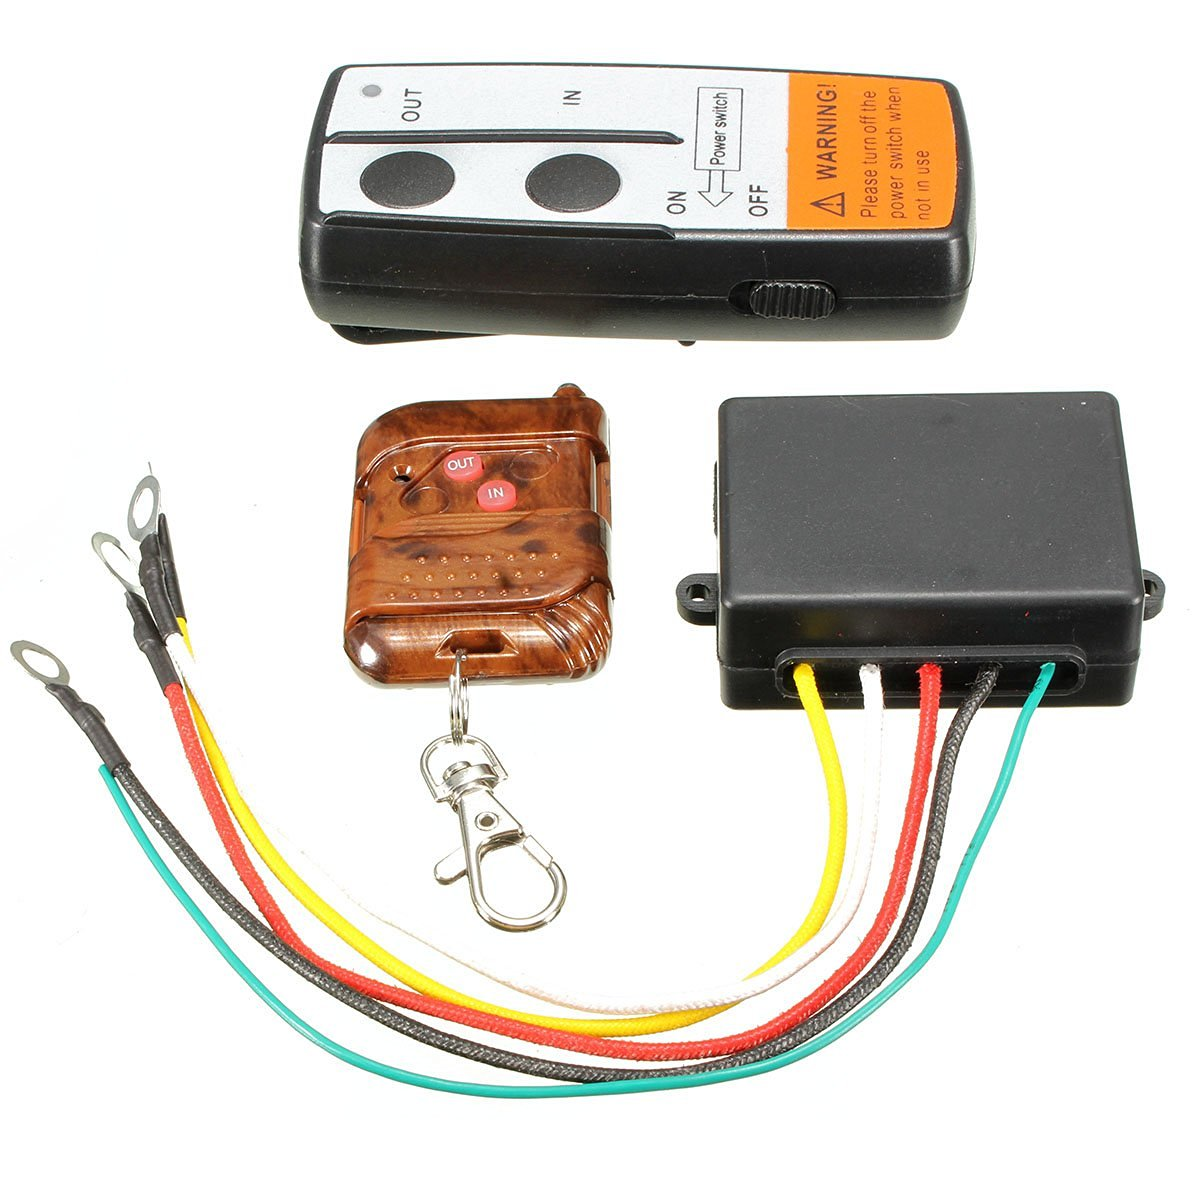 hight resolution of wireless remote control toogoo r electric wireless winch remote control handset 12v heavy